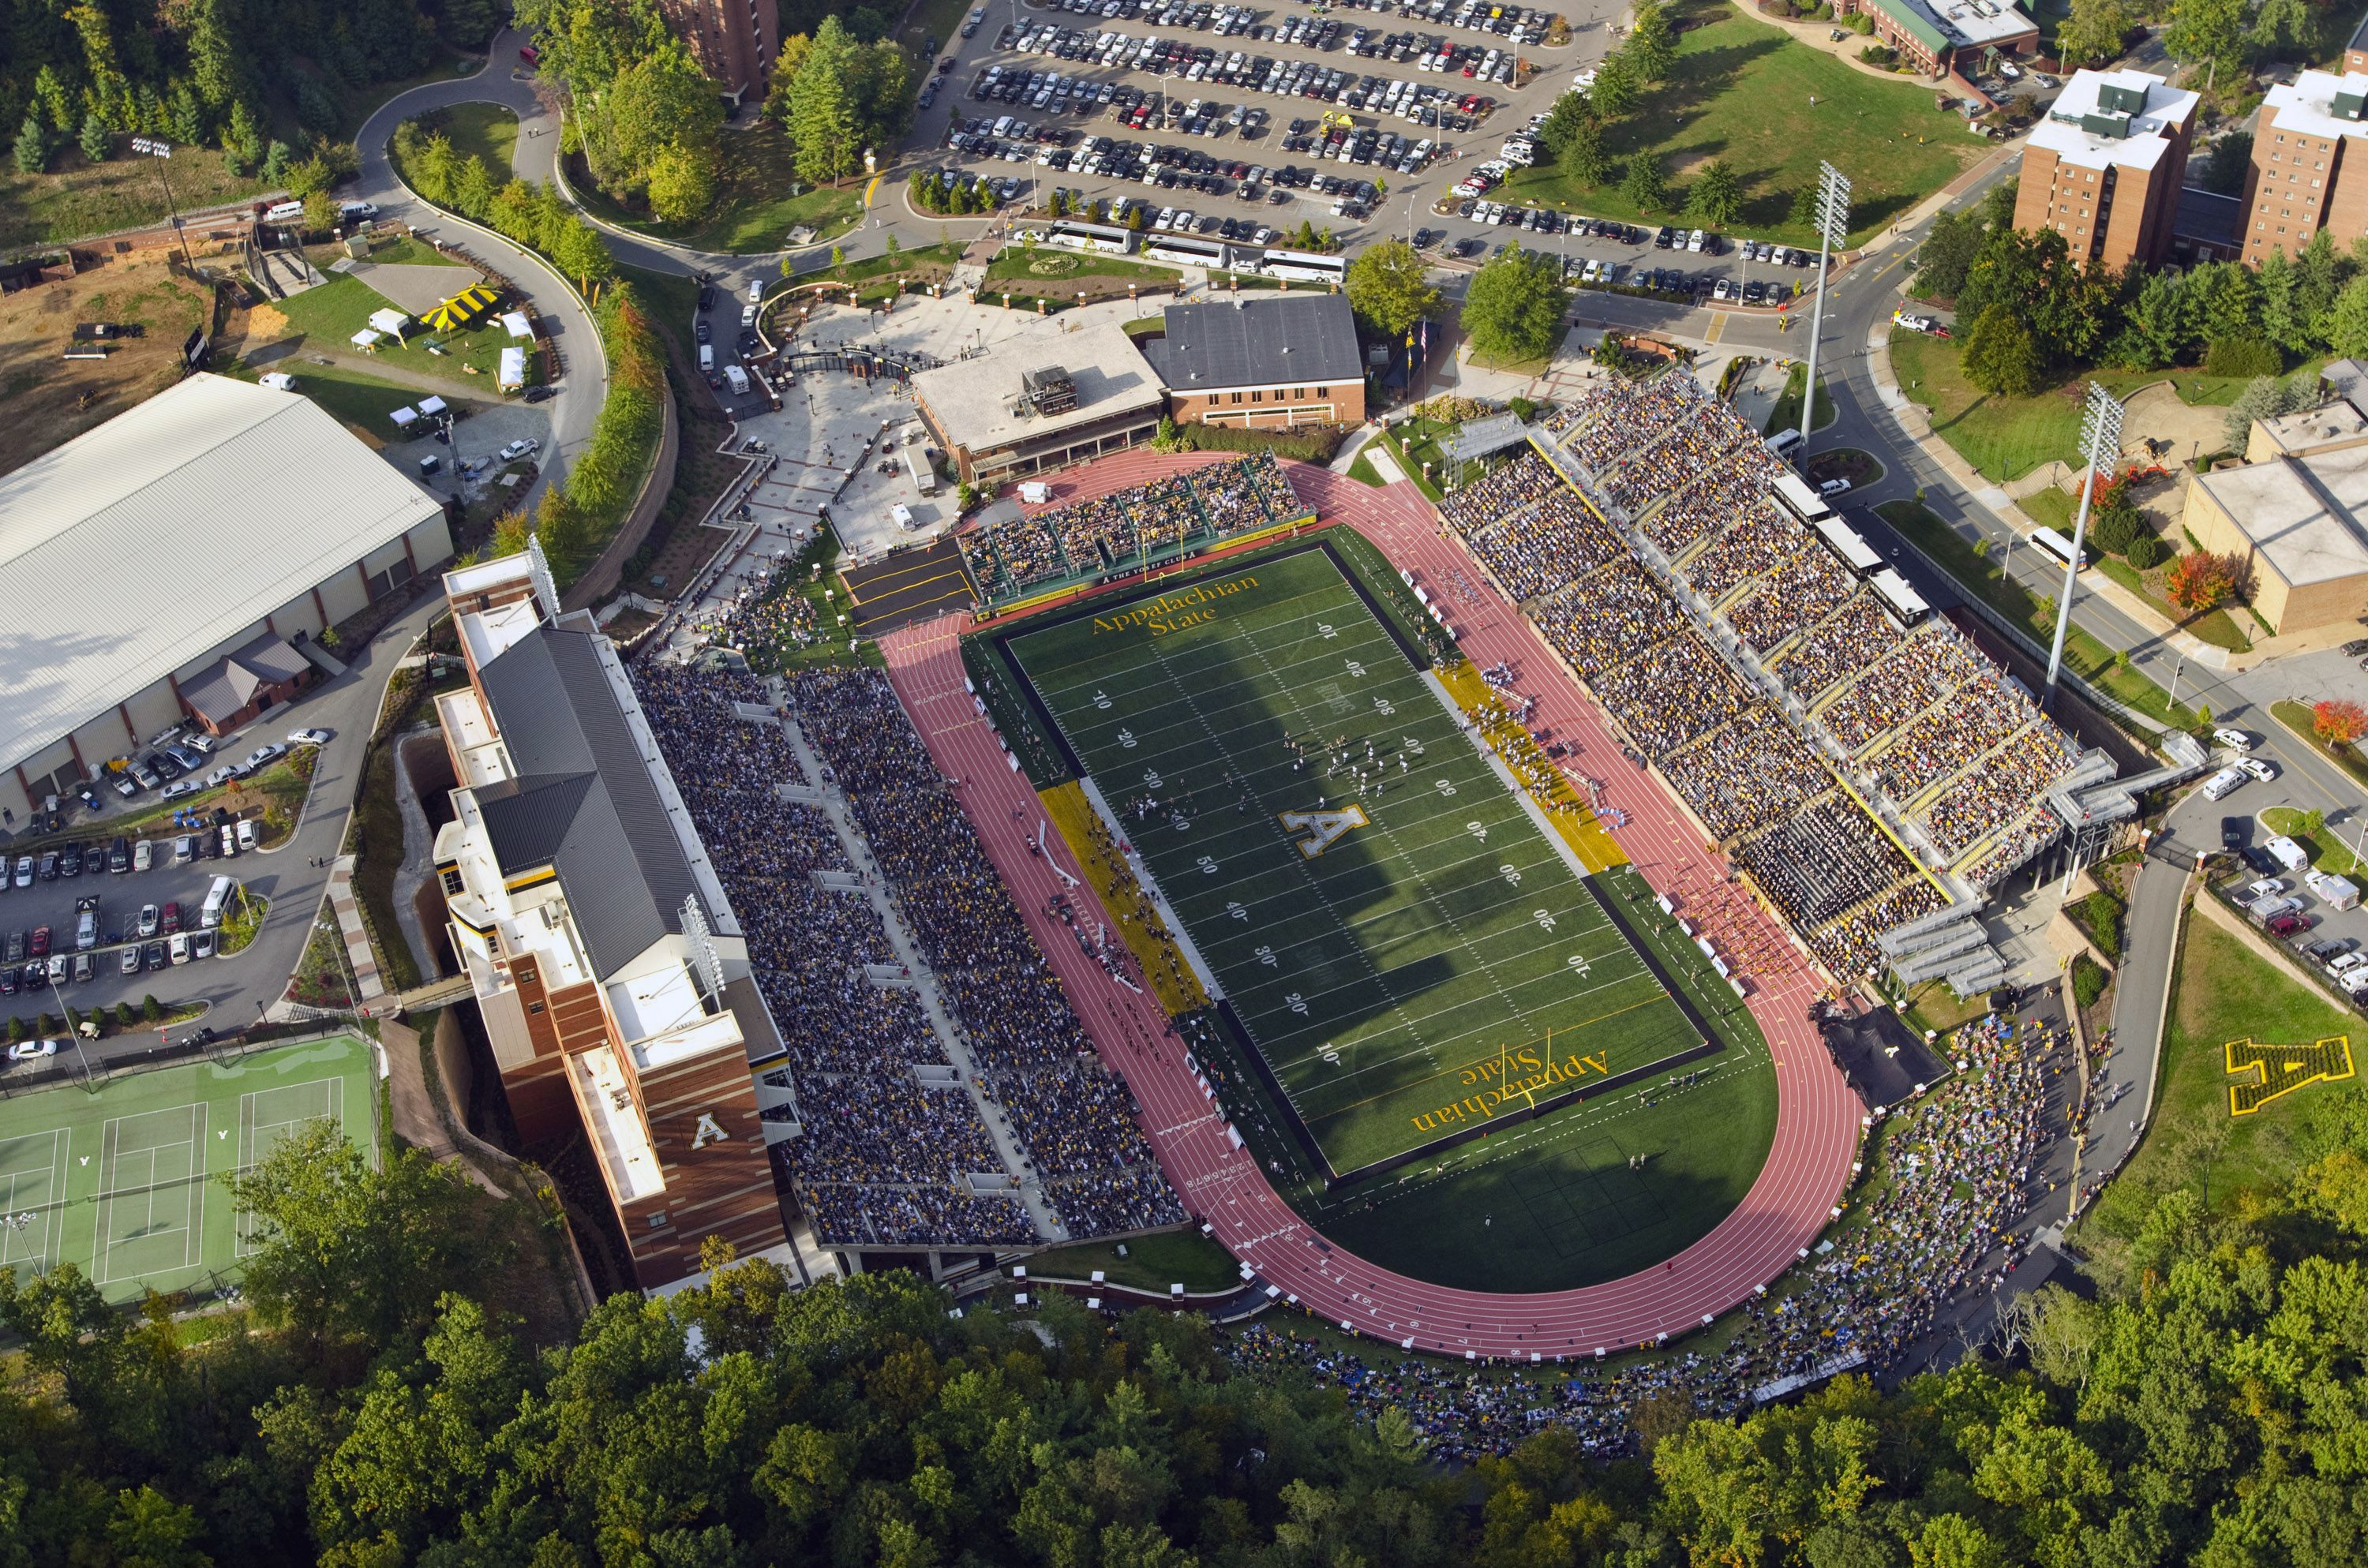 Appalachian State's Kidd Brewer Stadium cant wait for this